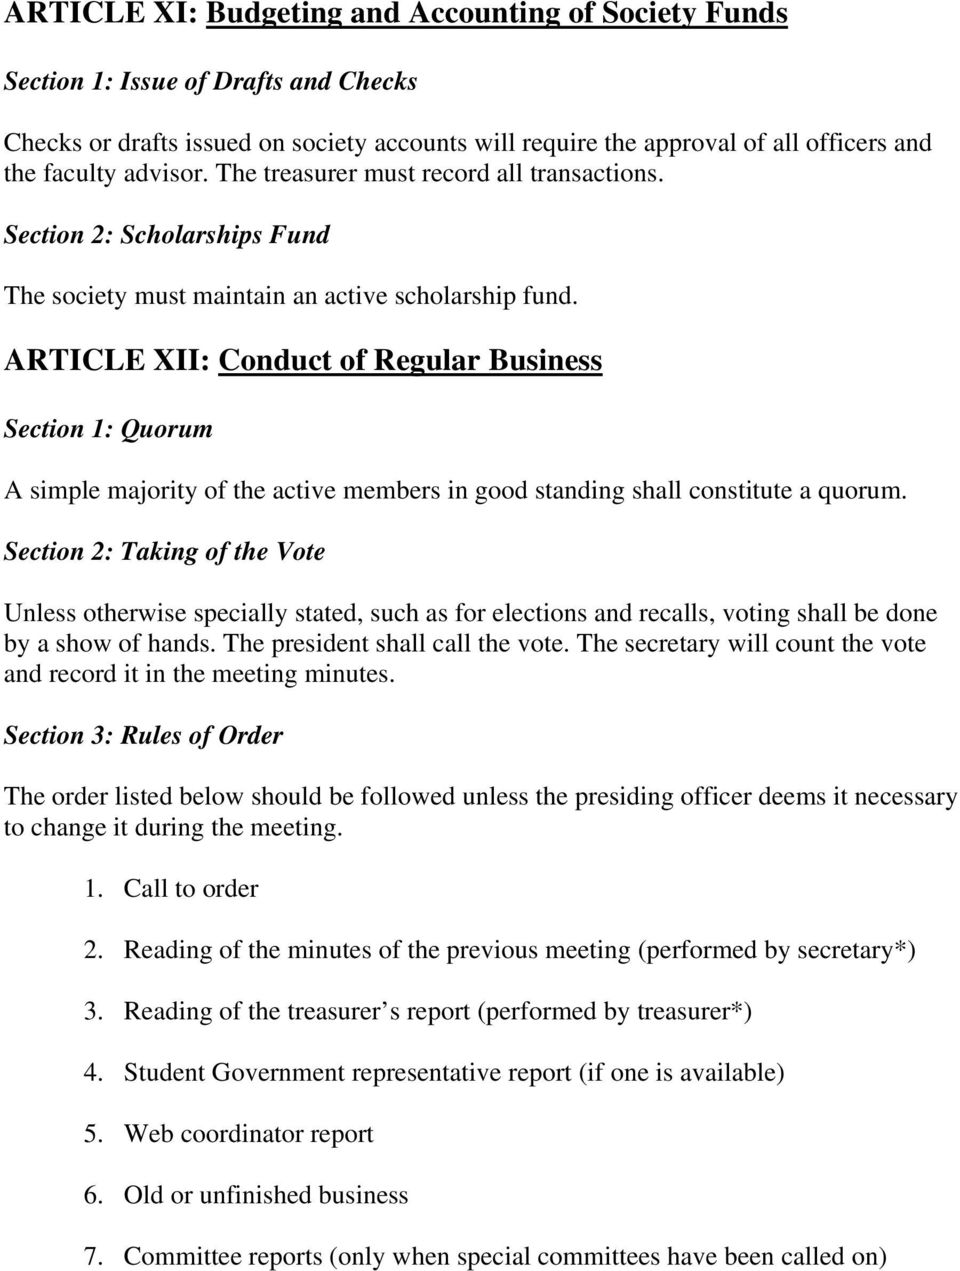 ARTICLE XII: Conduct of Regular Business Section 1: Quorum A simple majority of the active members in good standing shall constitute a quorum.